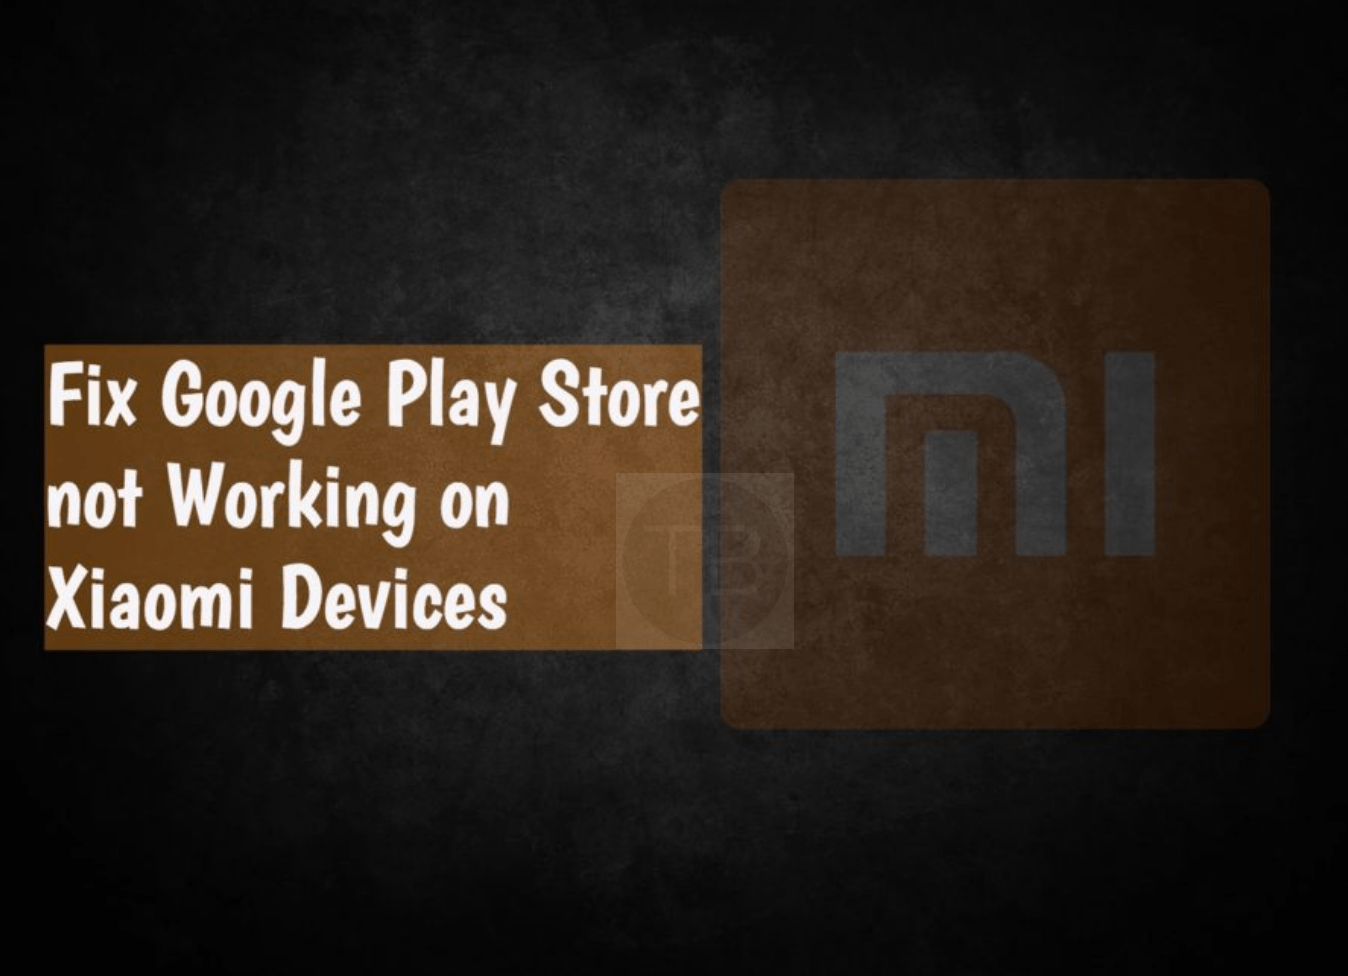 Fix Google Play Store not working on Xiaomi Devices | TechBeasts